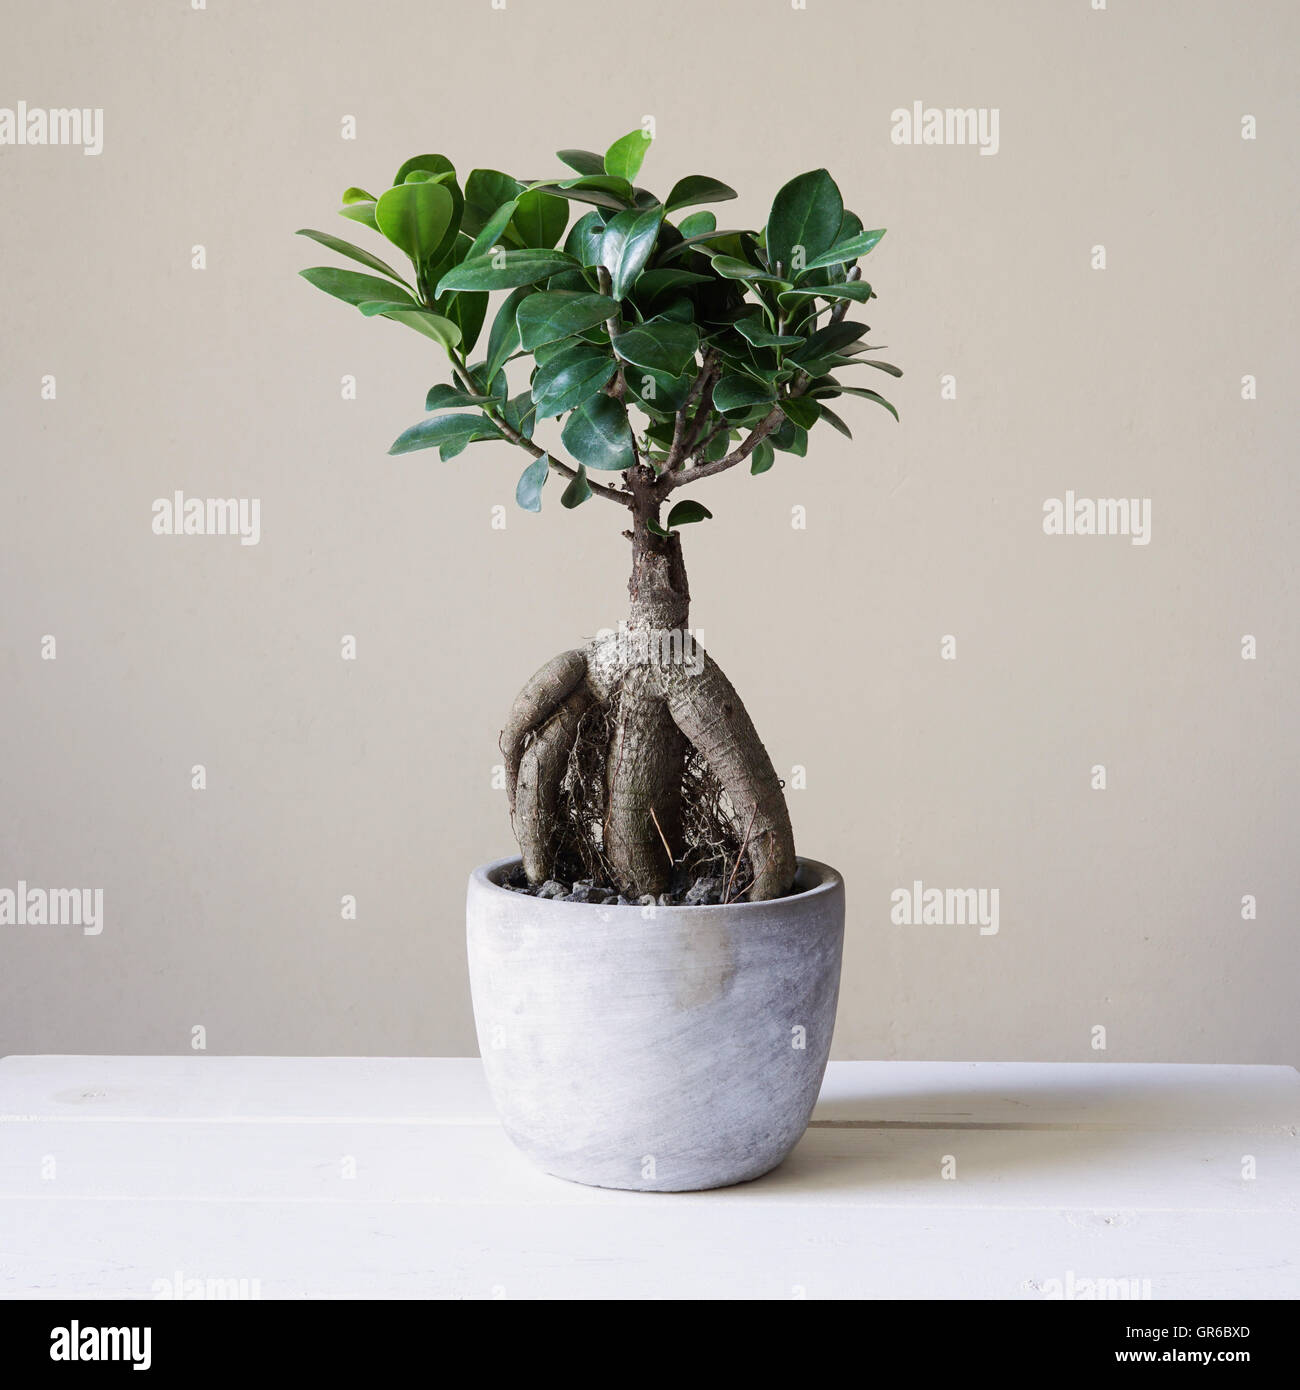 Ficus plant indoor stock photos ficus plant indoor stock - Bonsai zimmerpflanze ...